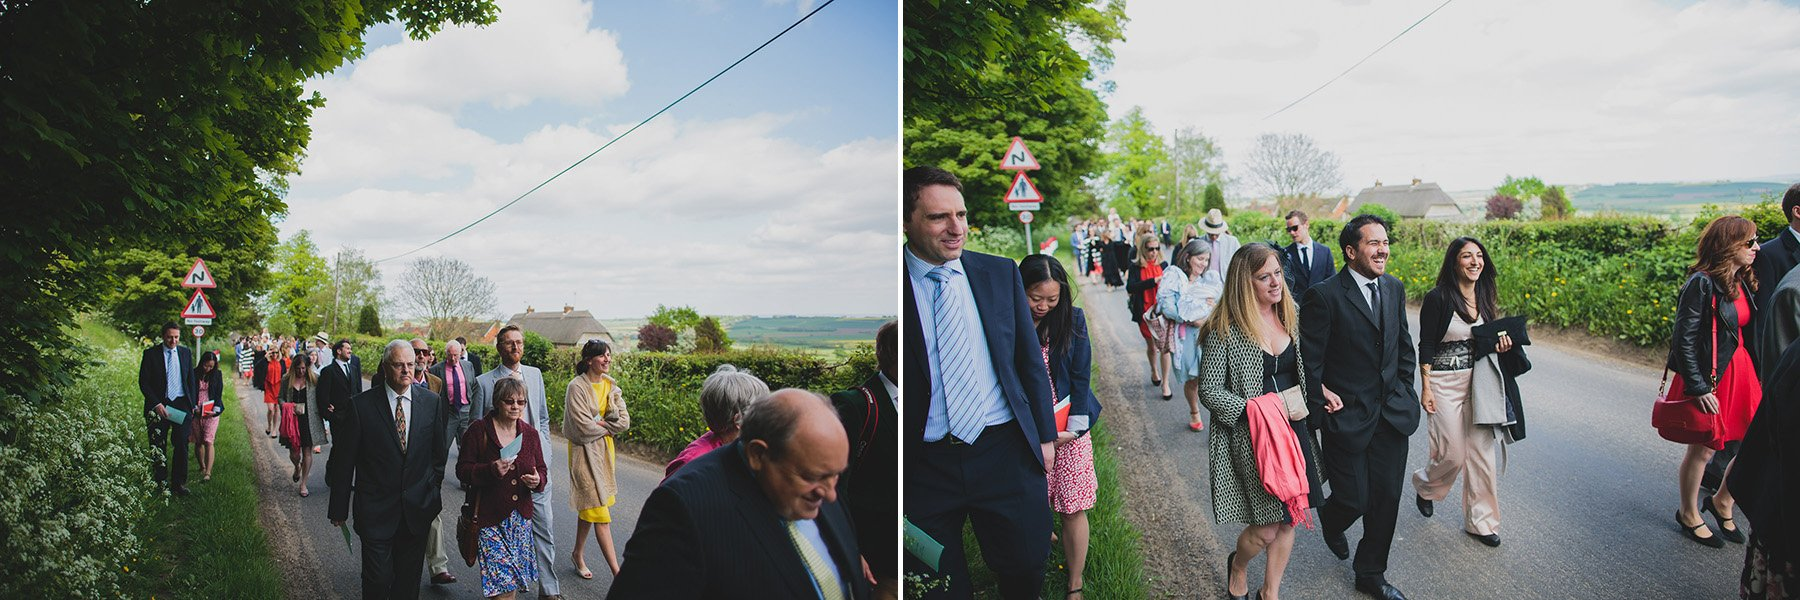 Buckinghamshire-Wedding-Lizzie-Duncan-087